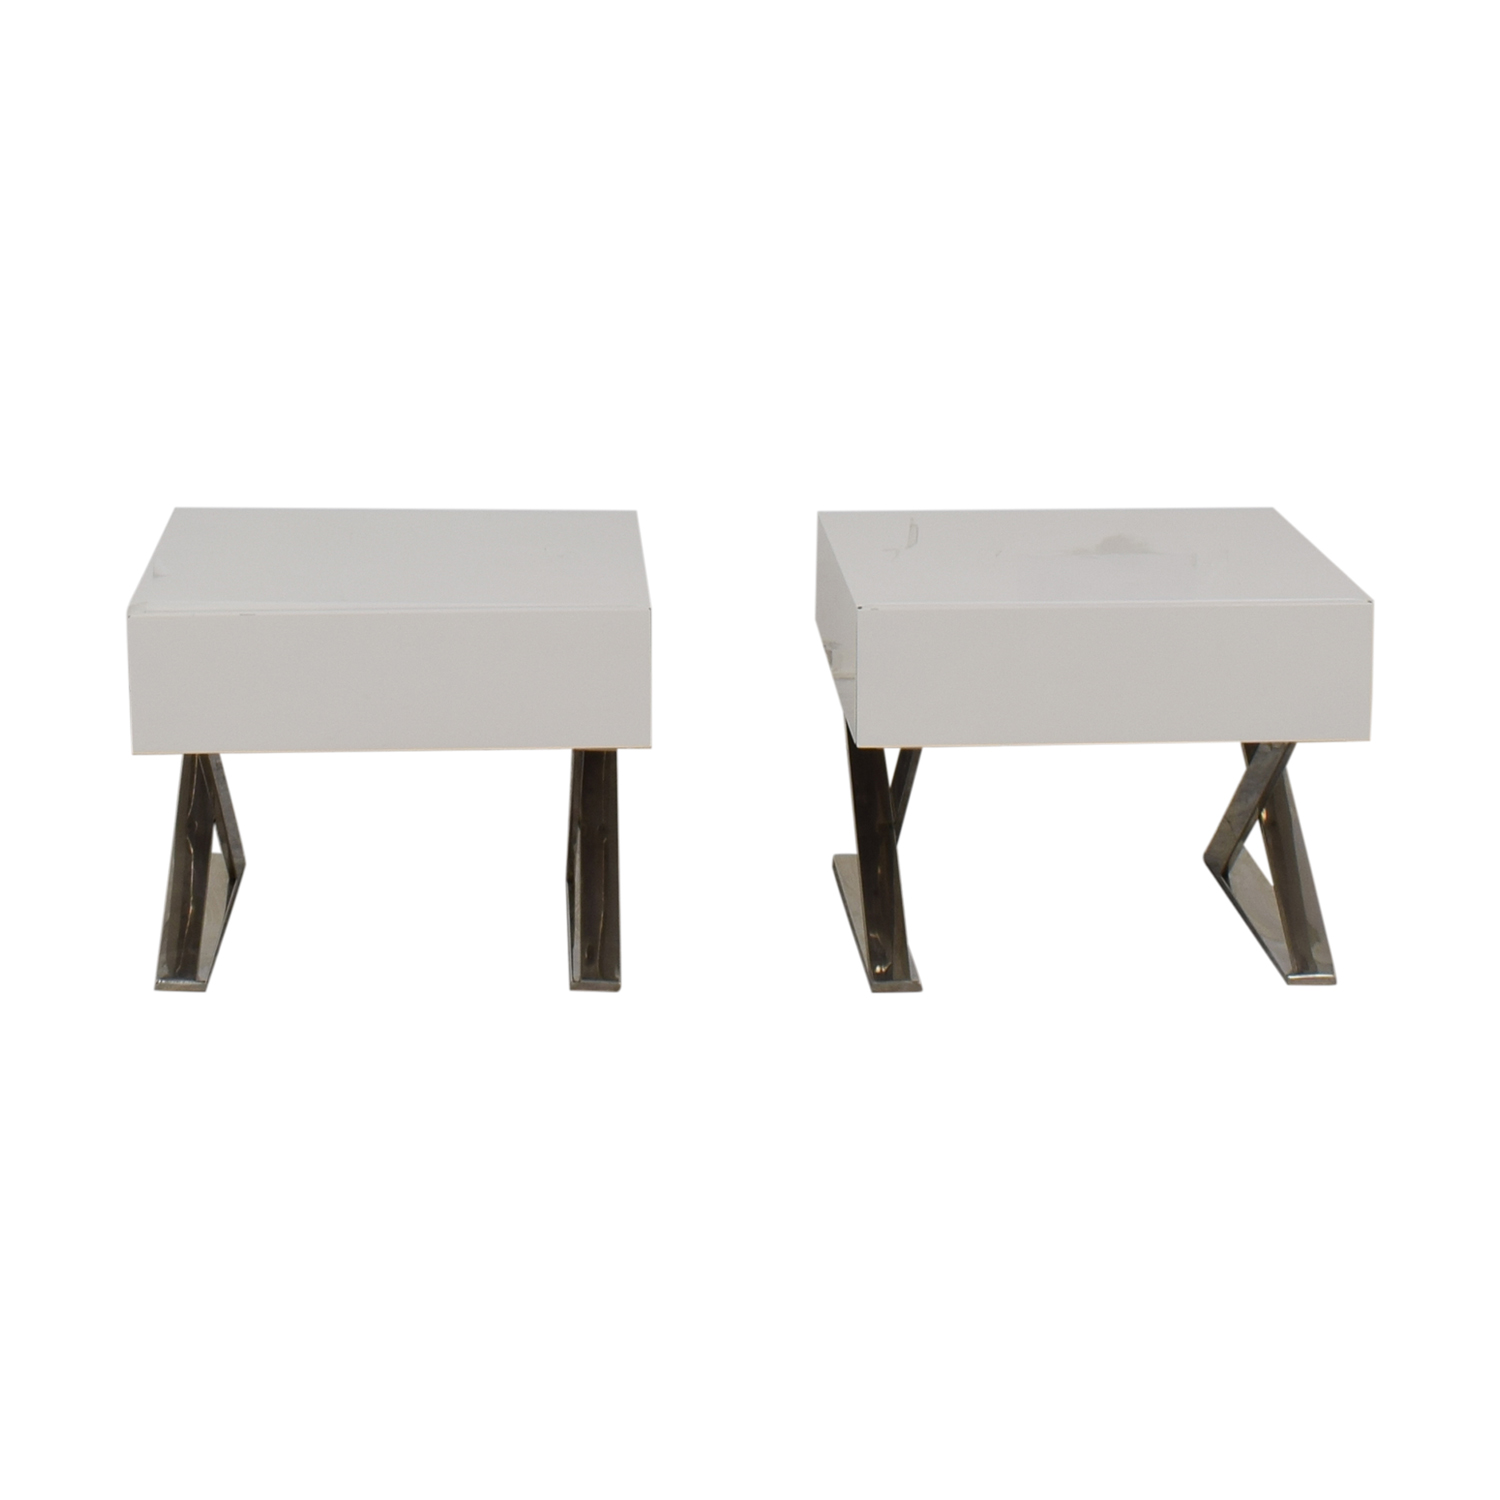 LexMod LexMod Sector White Single Drawer End Tables nj